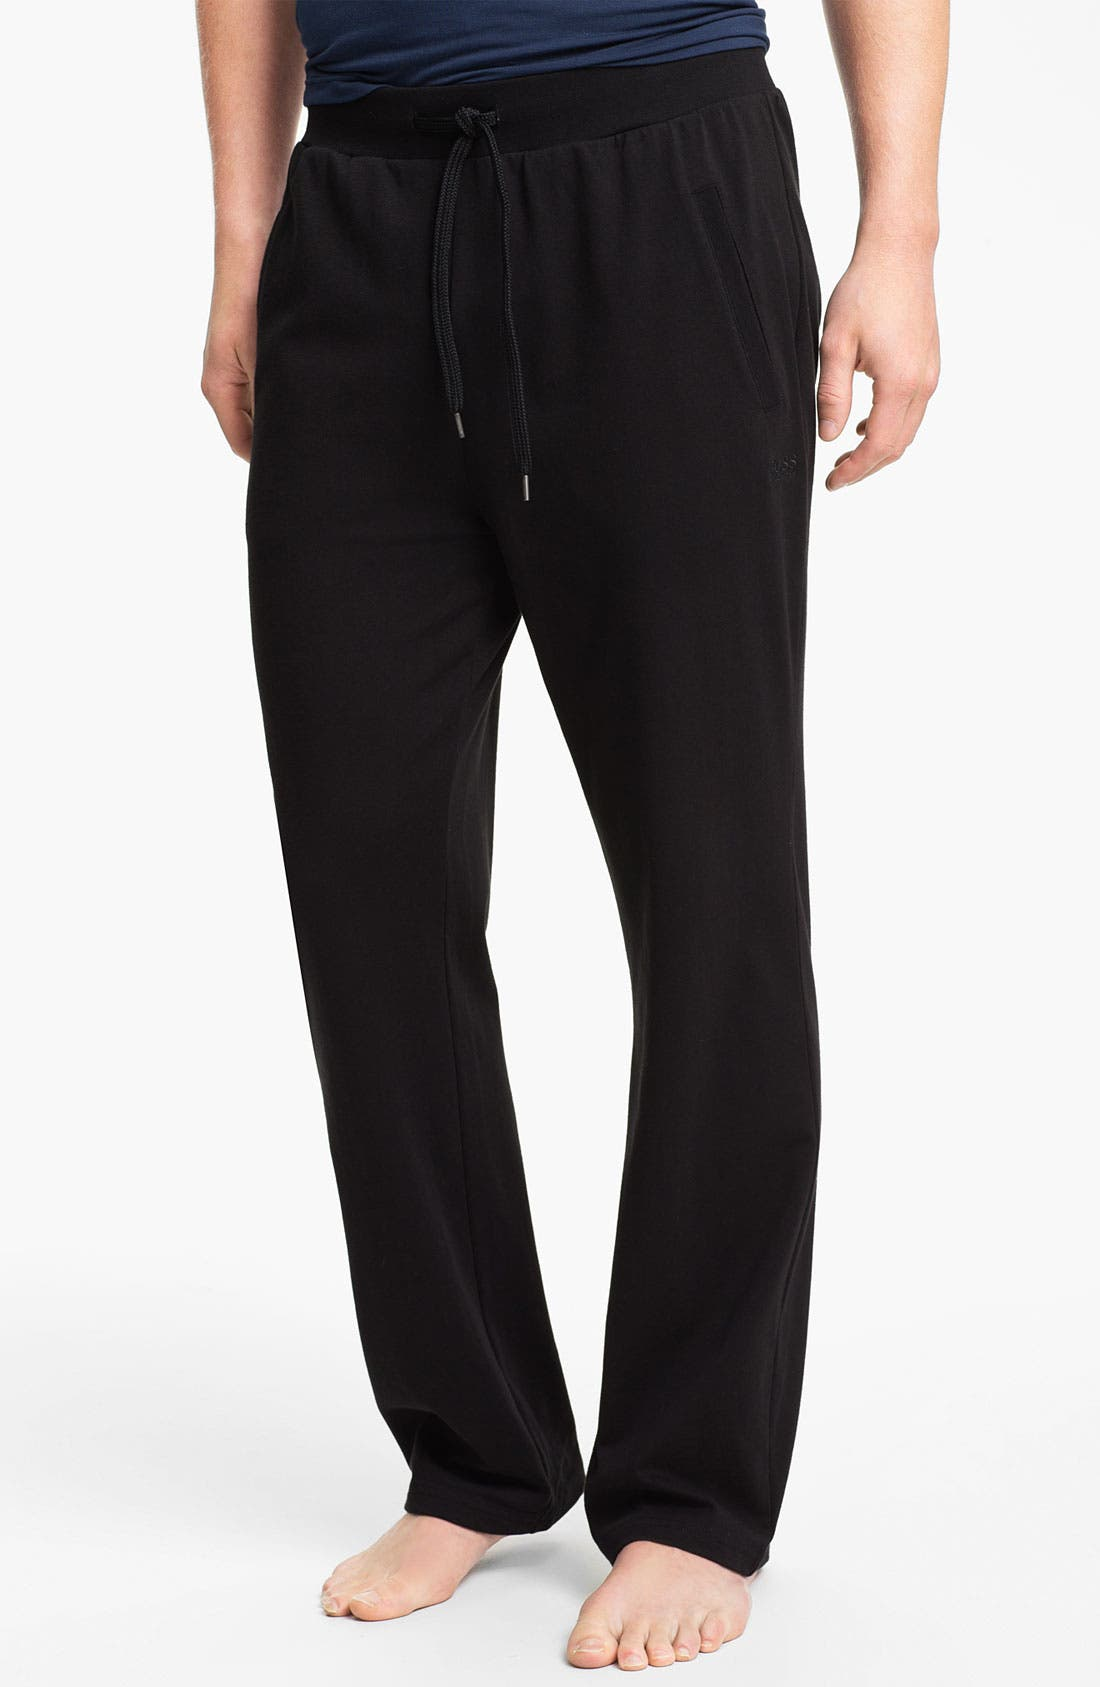 Alternate Image 1 Selected - BOSS Black 'Innovation 3' Lounge Pants